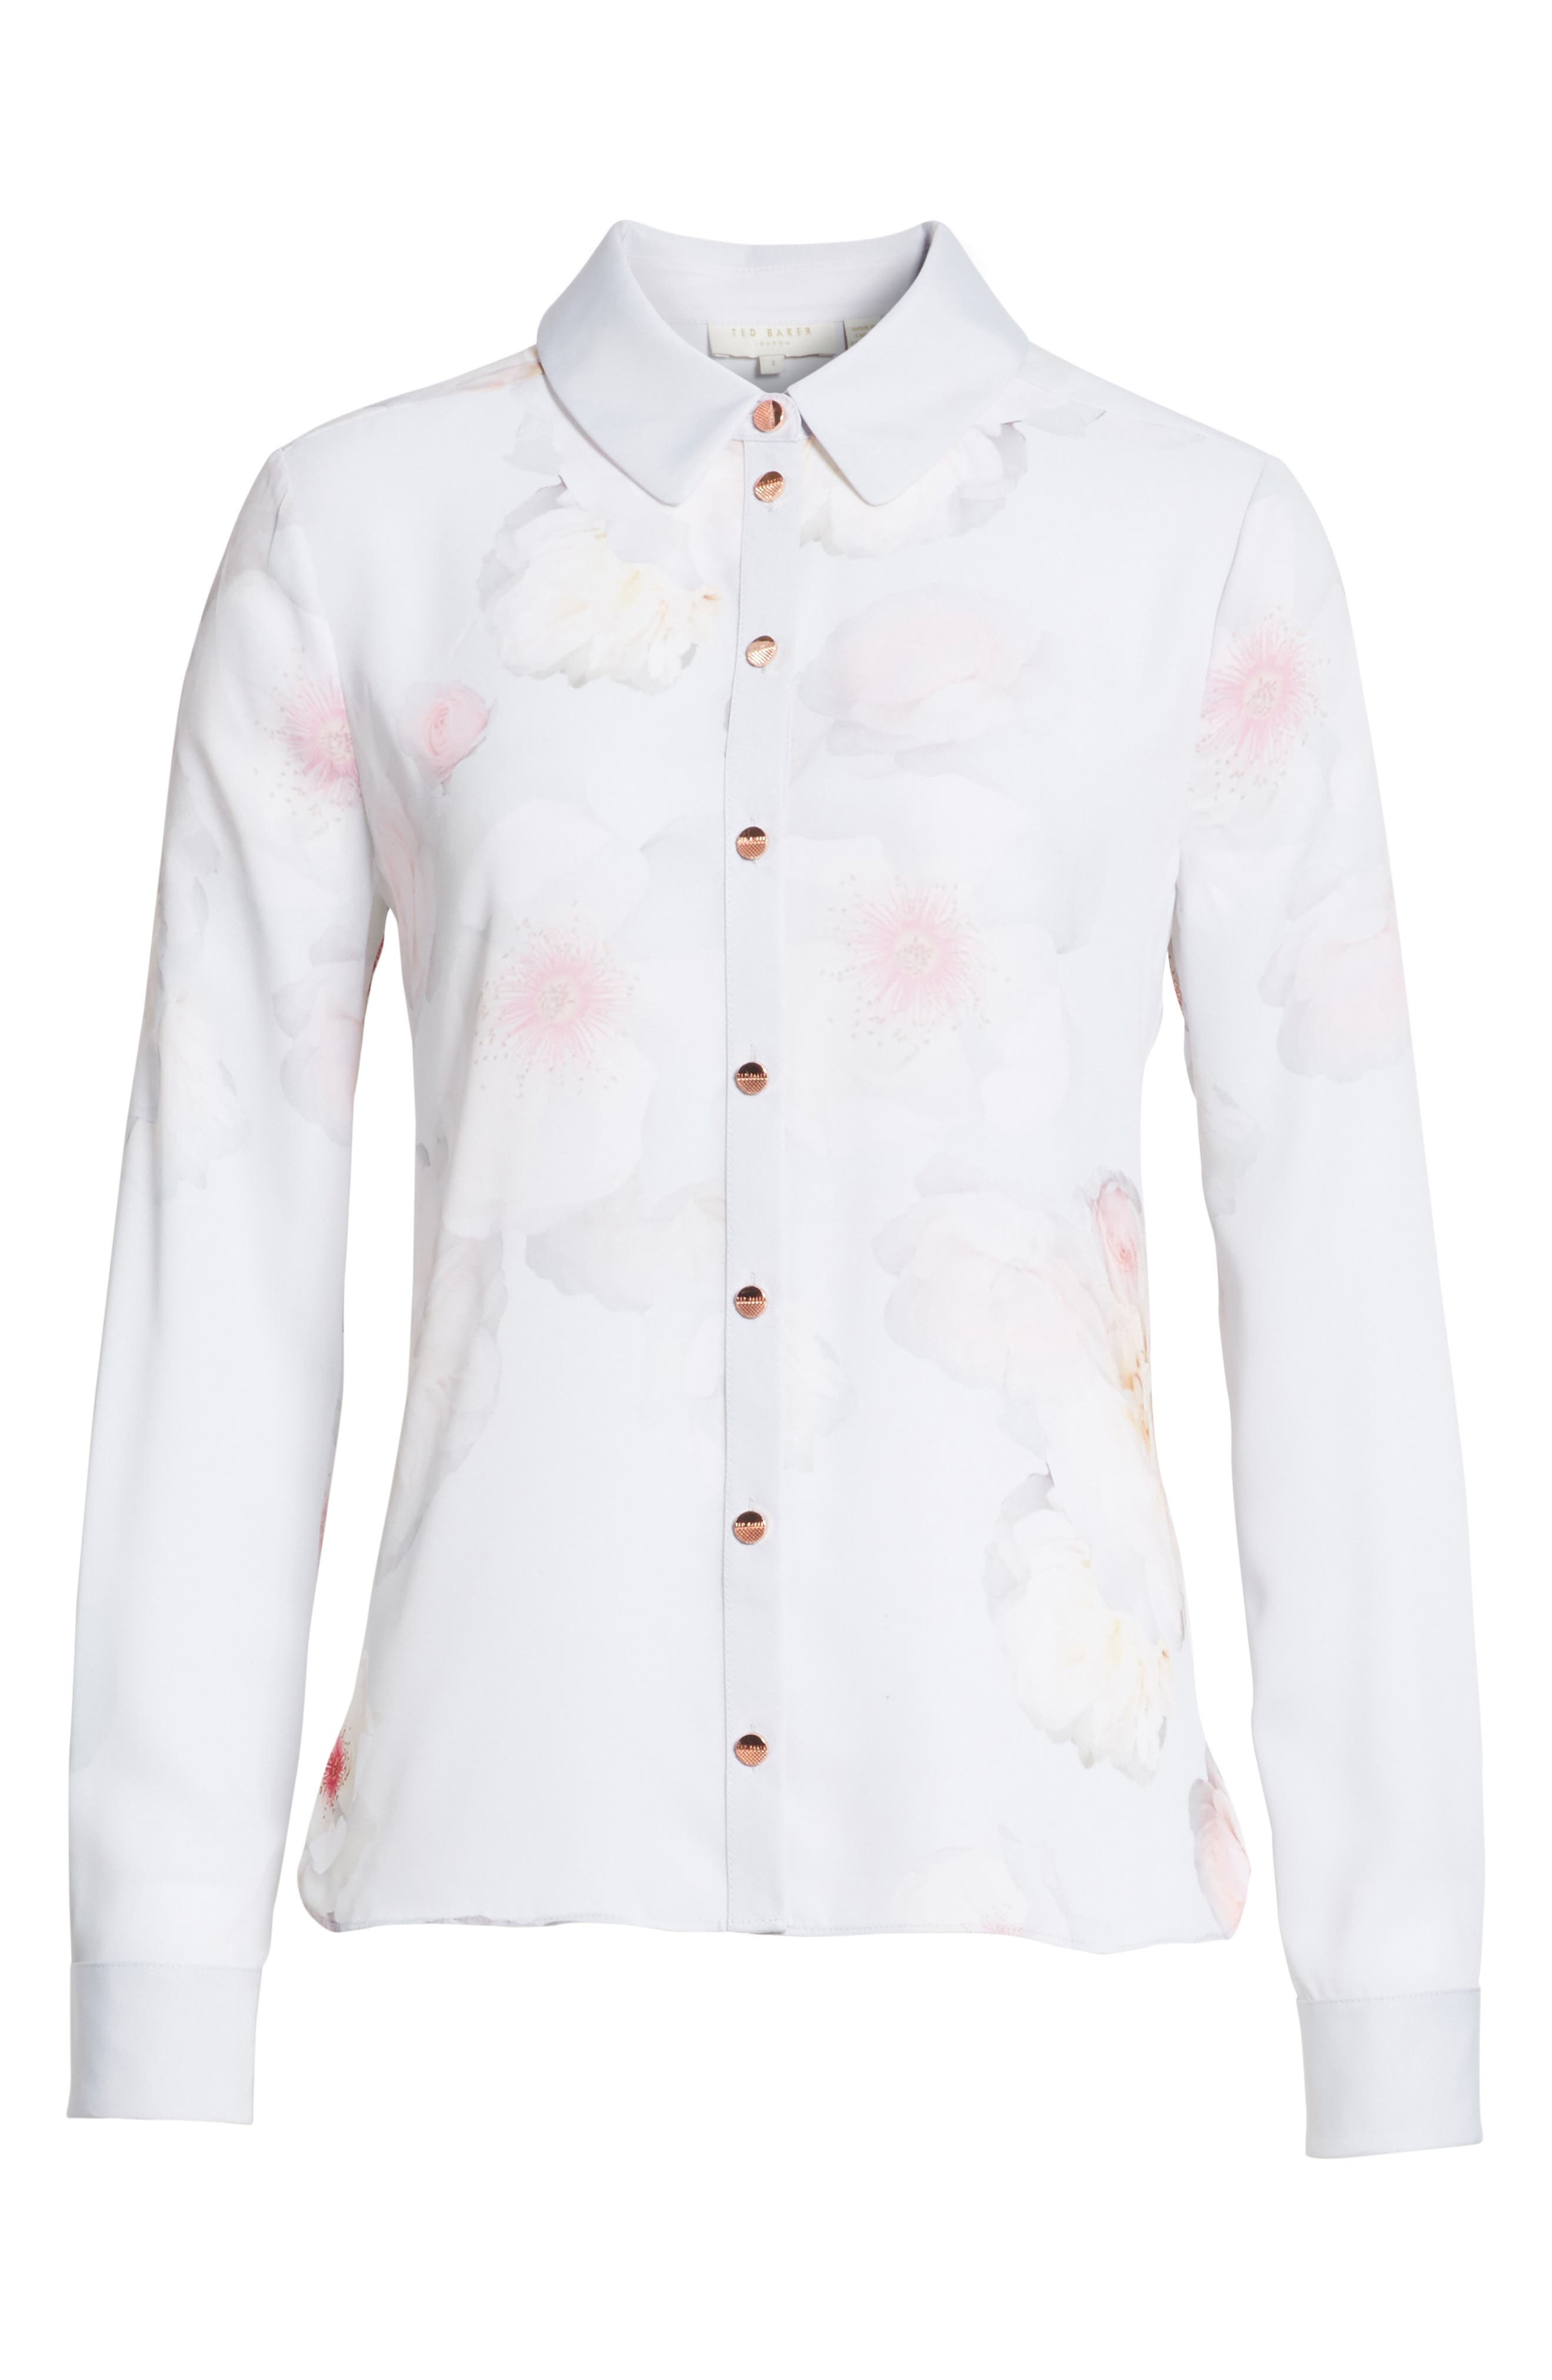 Relar Chelsea Grey Flower Print Shirt,                             Alternate thumbnail 6, color,                             Mid Grey